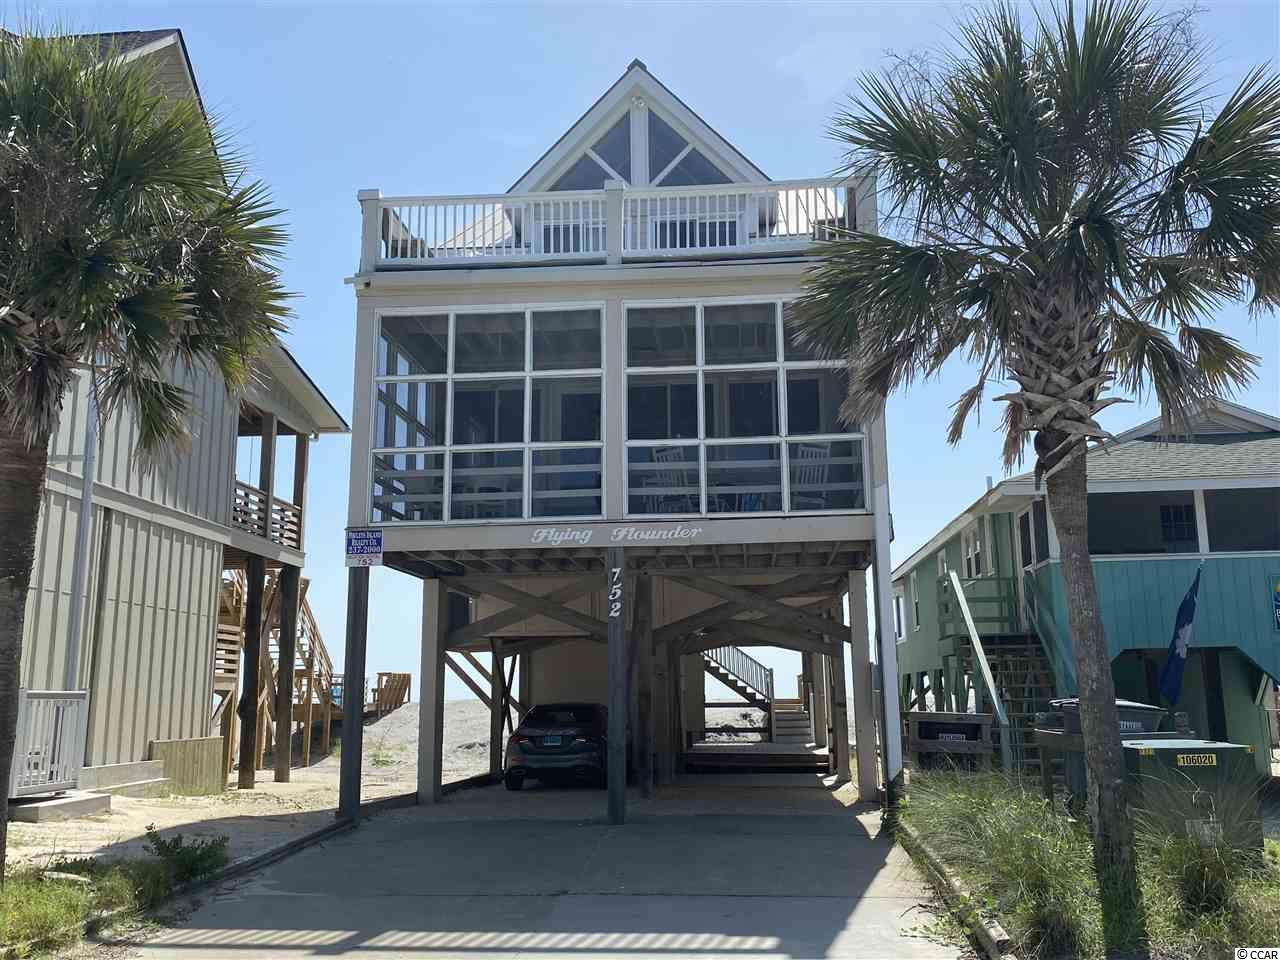 The best in beach home design meets the best in beach location. With ocean front and dock in creek on Pawleys this home built in 1990 was designed by the Architect owner to be the perfect beach home and achieves the goal. Every room offers a view of water, either the Atlantic Ocean or Pawleys Creek. Porches on both ocean and beach sides with decks matching above.  The central open kitchen lets the cook join the party. Great sitting areas on beach or creek side with modern decor that capture the fun and beauty of ocean front living. Spend your day on the beach or on the creek with both only a few feet away. Extra wide beach and great fishing in the creek!  This is what Pawleys is all about. Join our proud owners with this wonderful income producer that will be your family and friends favorite place for years to come. There is no HOA or dues on Pawleys!